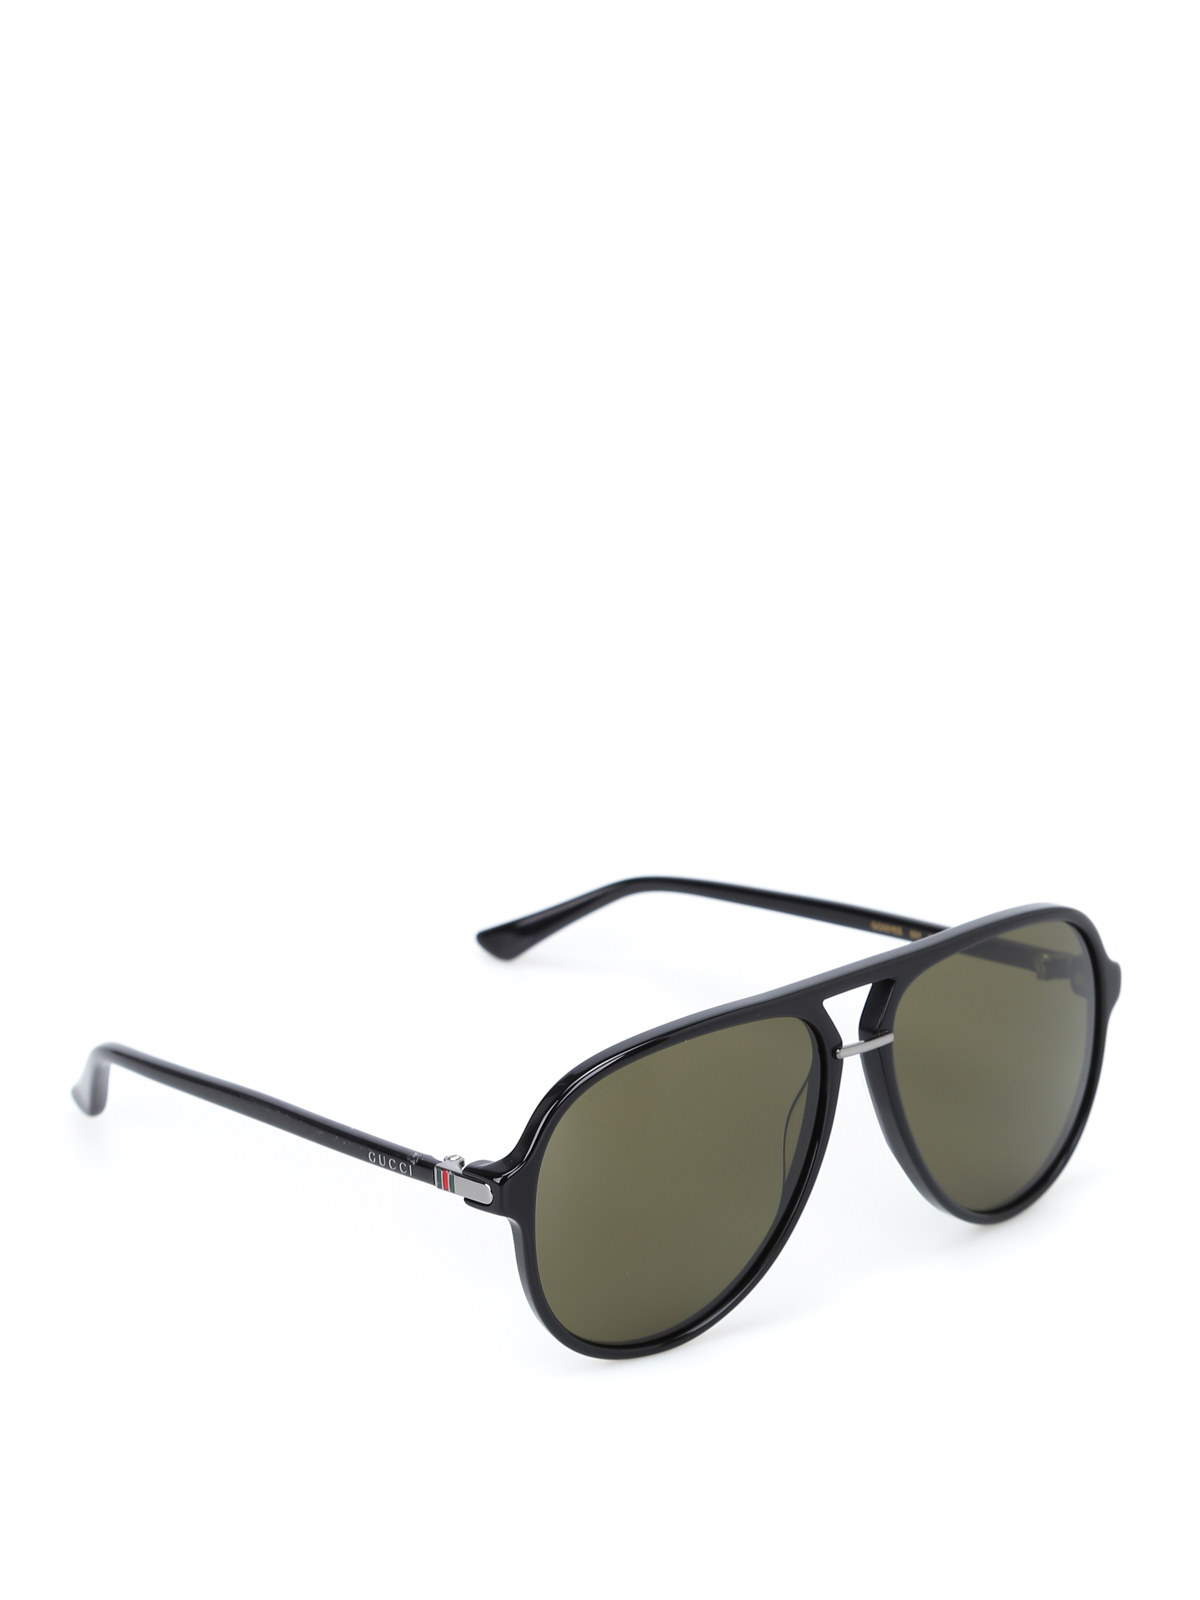 49e76c4f7cc Gucci - Aviator shaped polished sunglasses - sunglasses - GG0015S 001